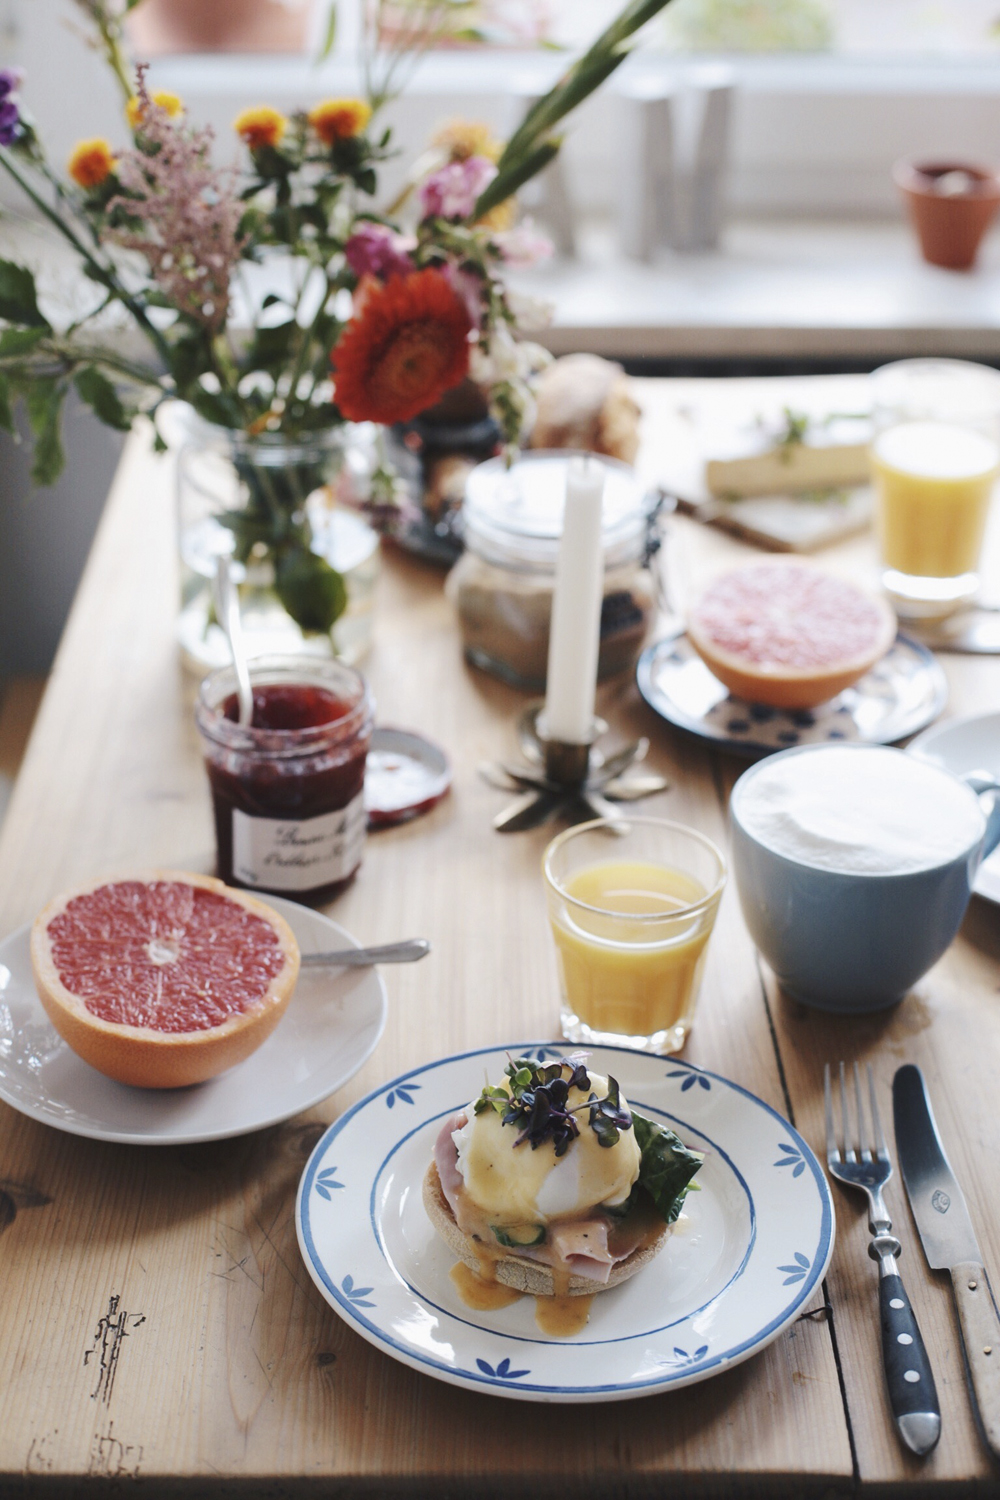 Breakfast with Eggs Benedict, Visual Diary on The Curly Head, a Blog from Munich, Photography by Amelie Niederbuchner